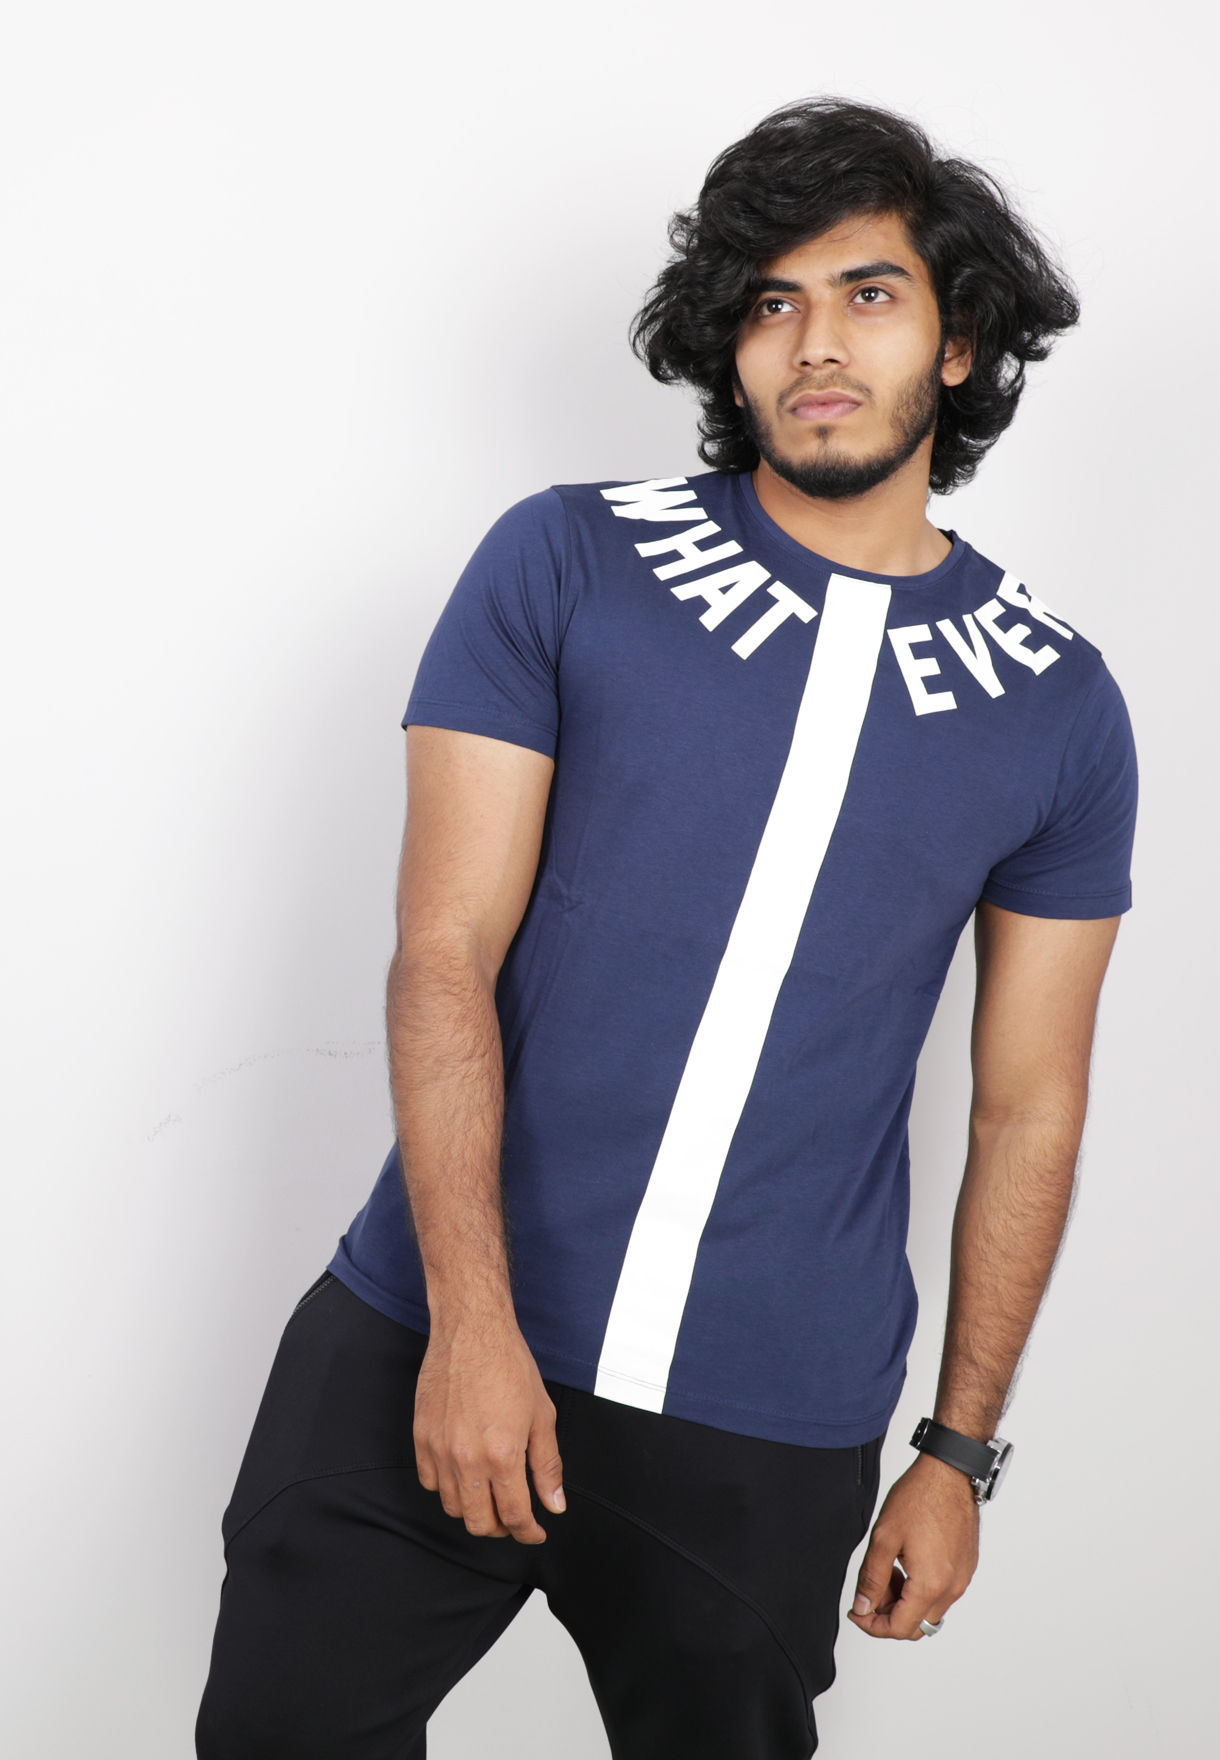 UN Lock Mens Tshirt Blue - ST8653 - L